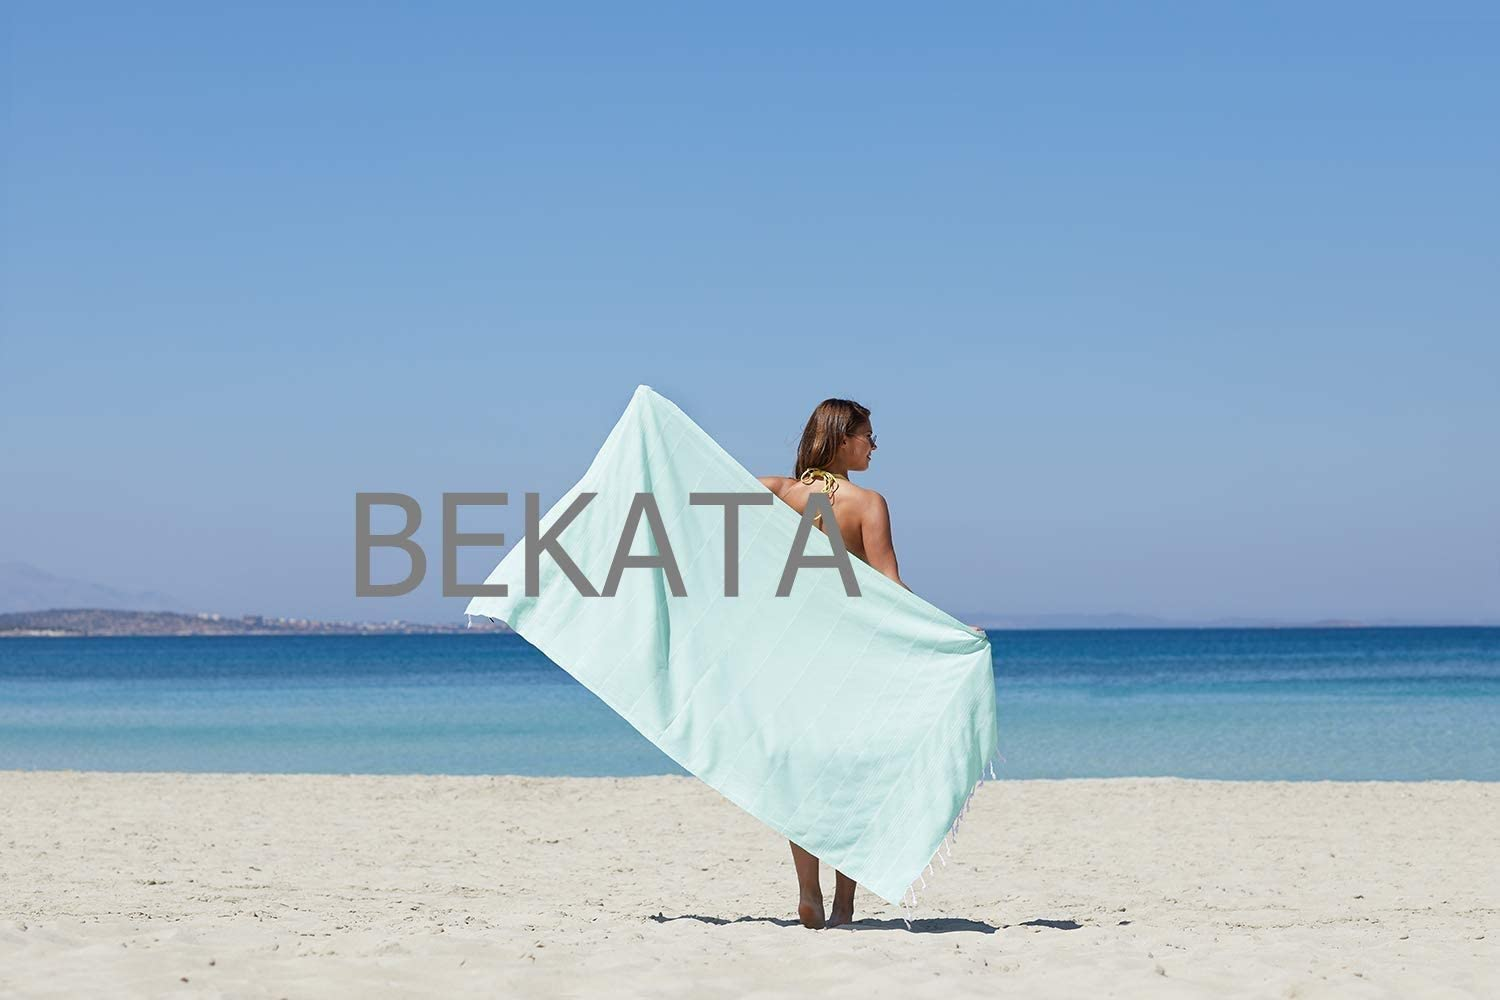 100x180cm Bekata Peshtemal Large Turkish Beach Towel Absorbent-Quick Dry 100/% Cotton for Bath Hammam Spa Travel Yoga Gym Yacht Pool Pilates Pareo Fouta Shawl Tablecloth Camping Blanket Set 39x70